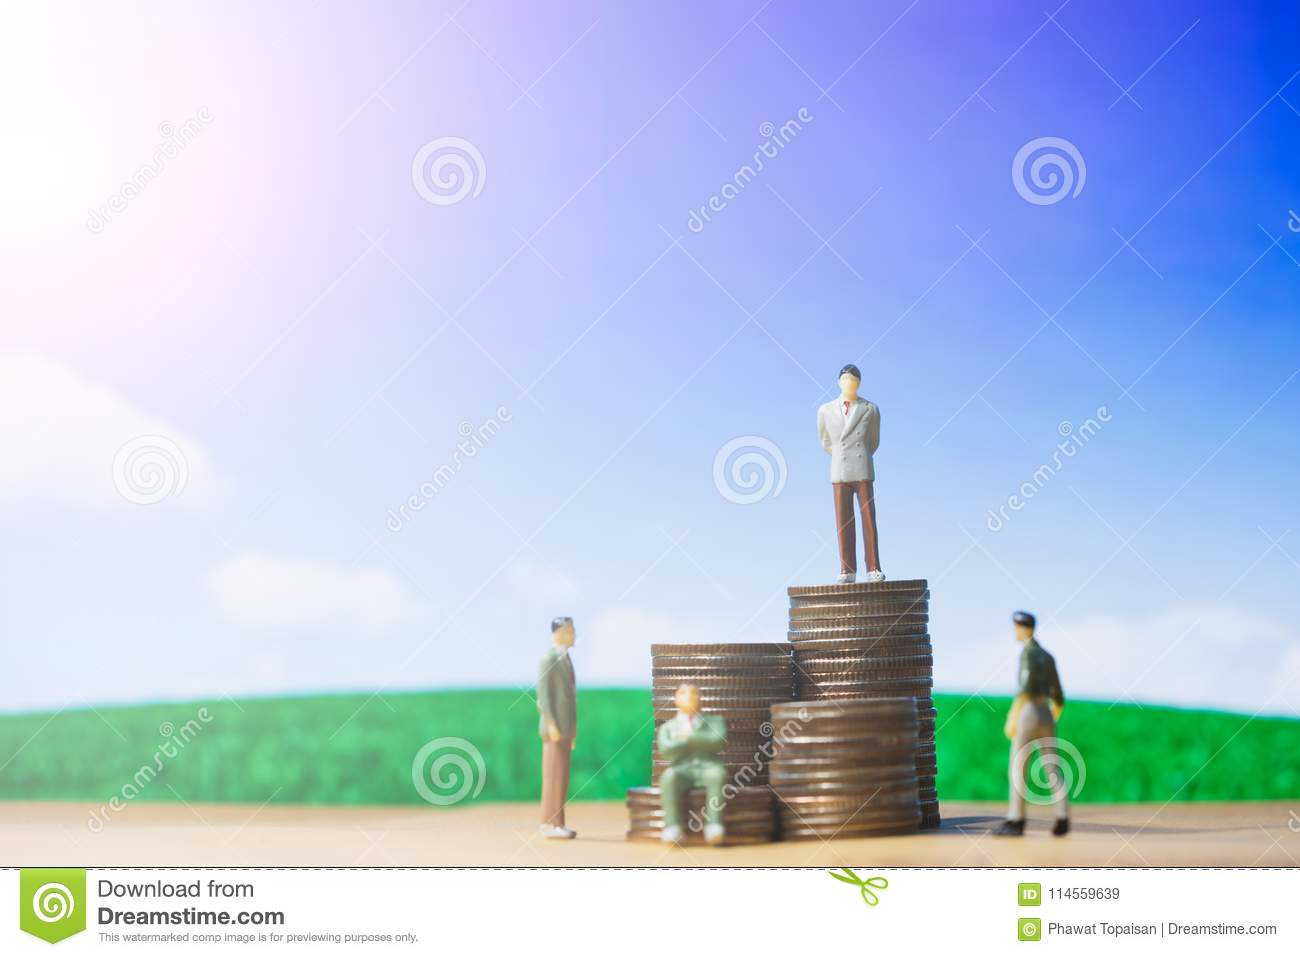 Miniature people small figures businessman stand on money of coin stack step up growing growth on blue sky and white cloud